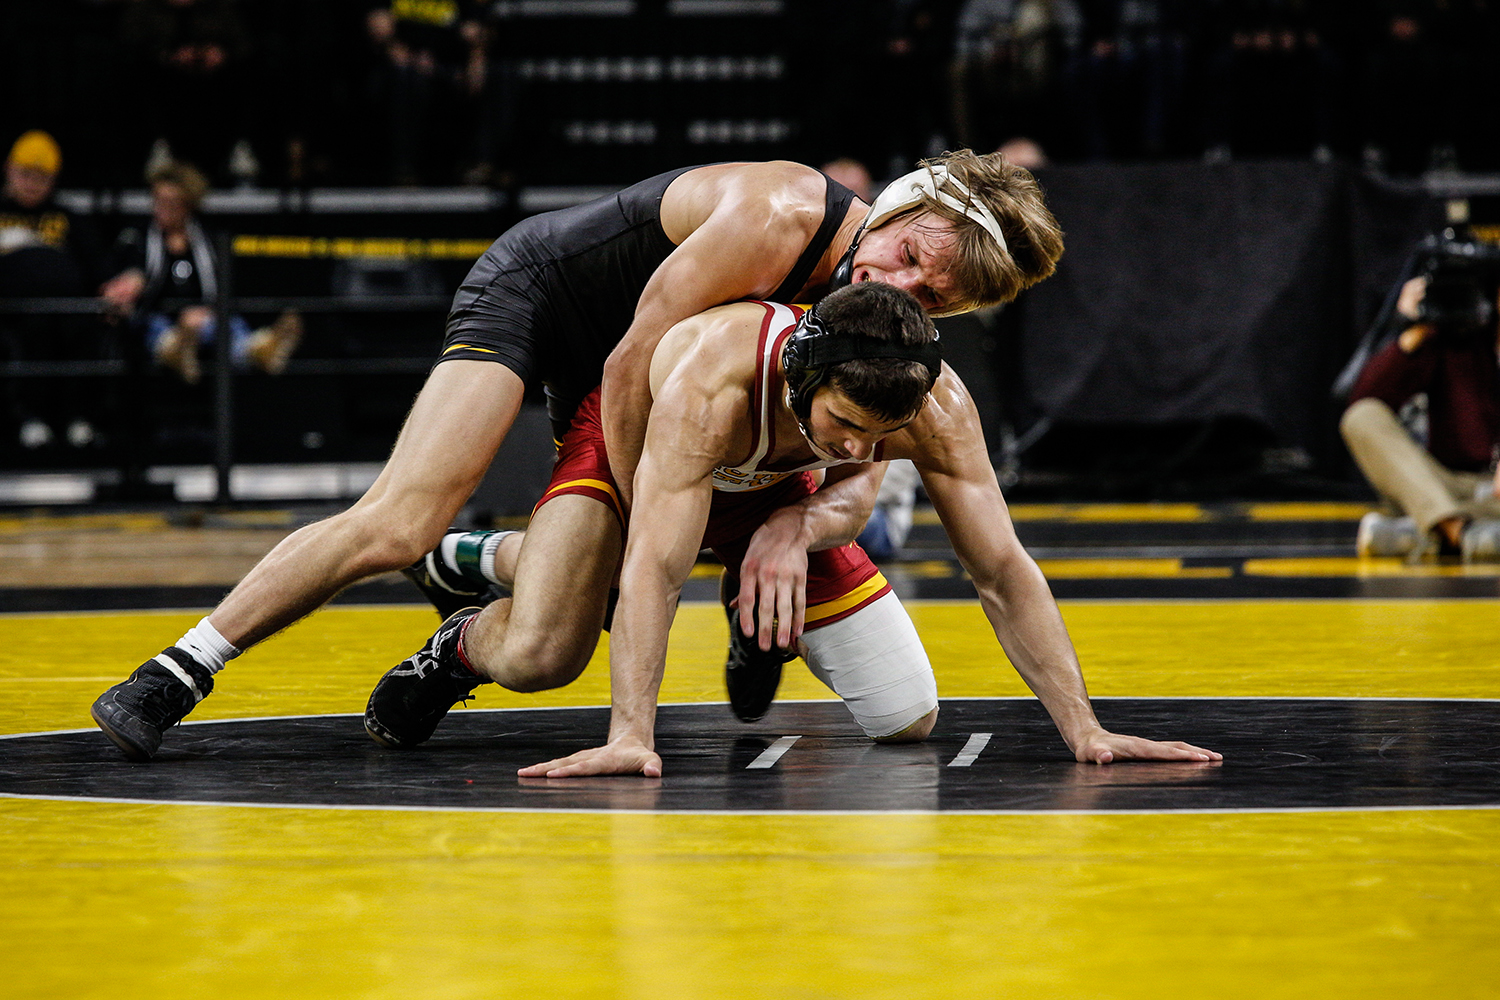 Iowa's Max Murin wrestles Iowa State's Ian Parker during Iowa's dual meet against Iowa State at Carver-Hawkeye Arena in Iowa City on Saturday, Dec. 1, 2018. Parker defeated Murin 5-4. Iowa defeated the Cyclones 19-18.